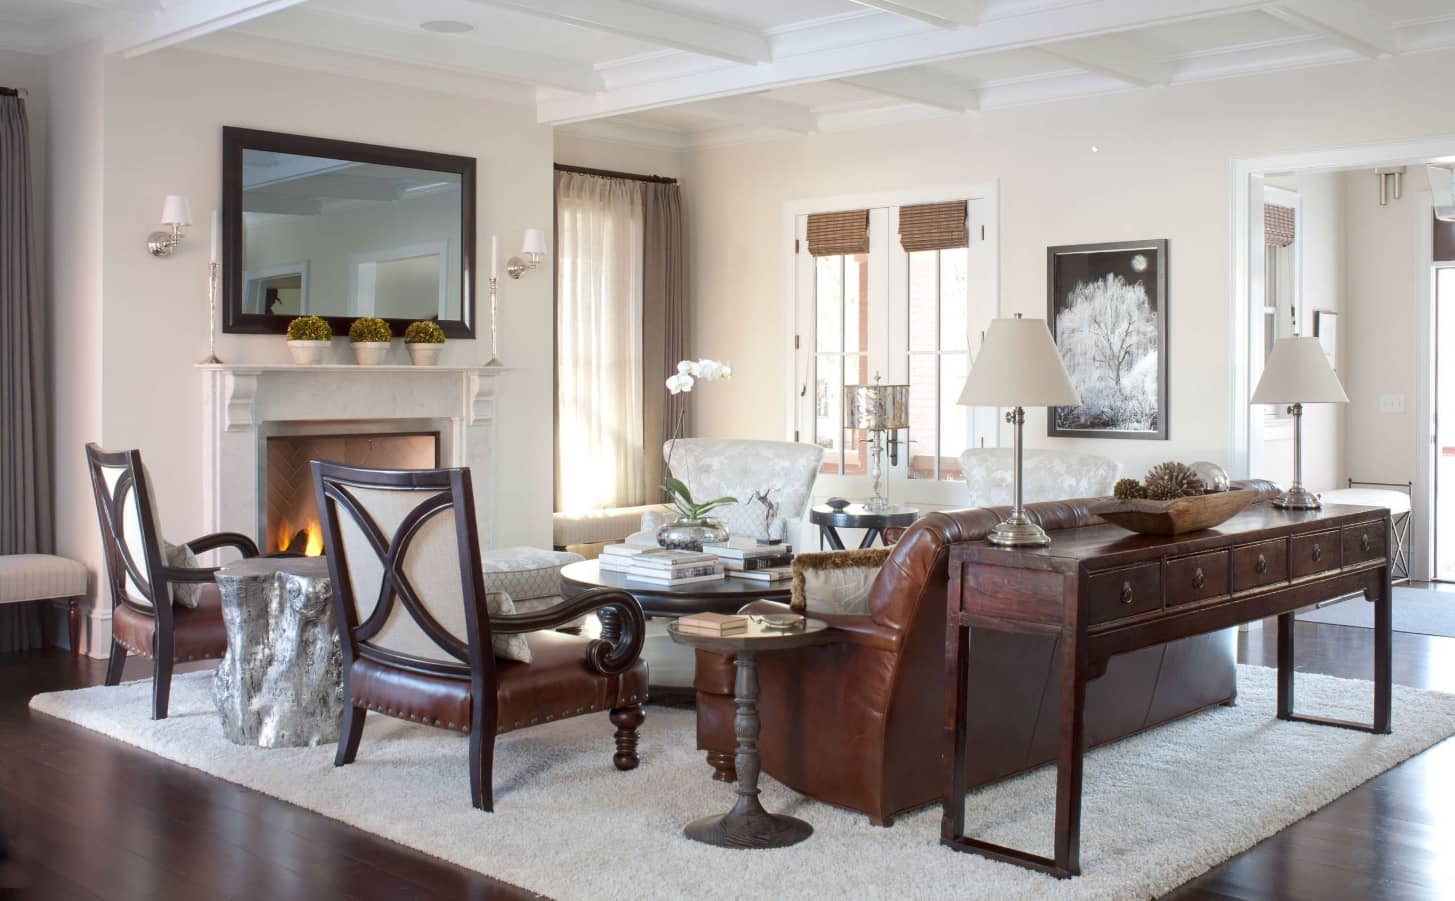 Nice classic dining room with hardwood furniture and mild beige colored walls